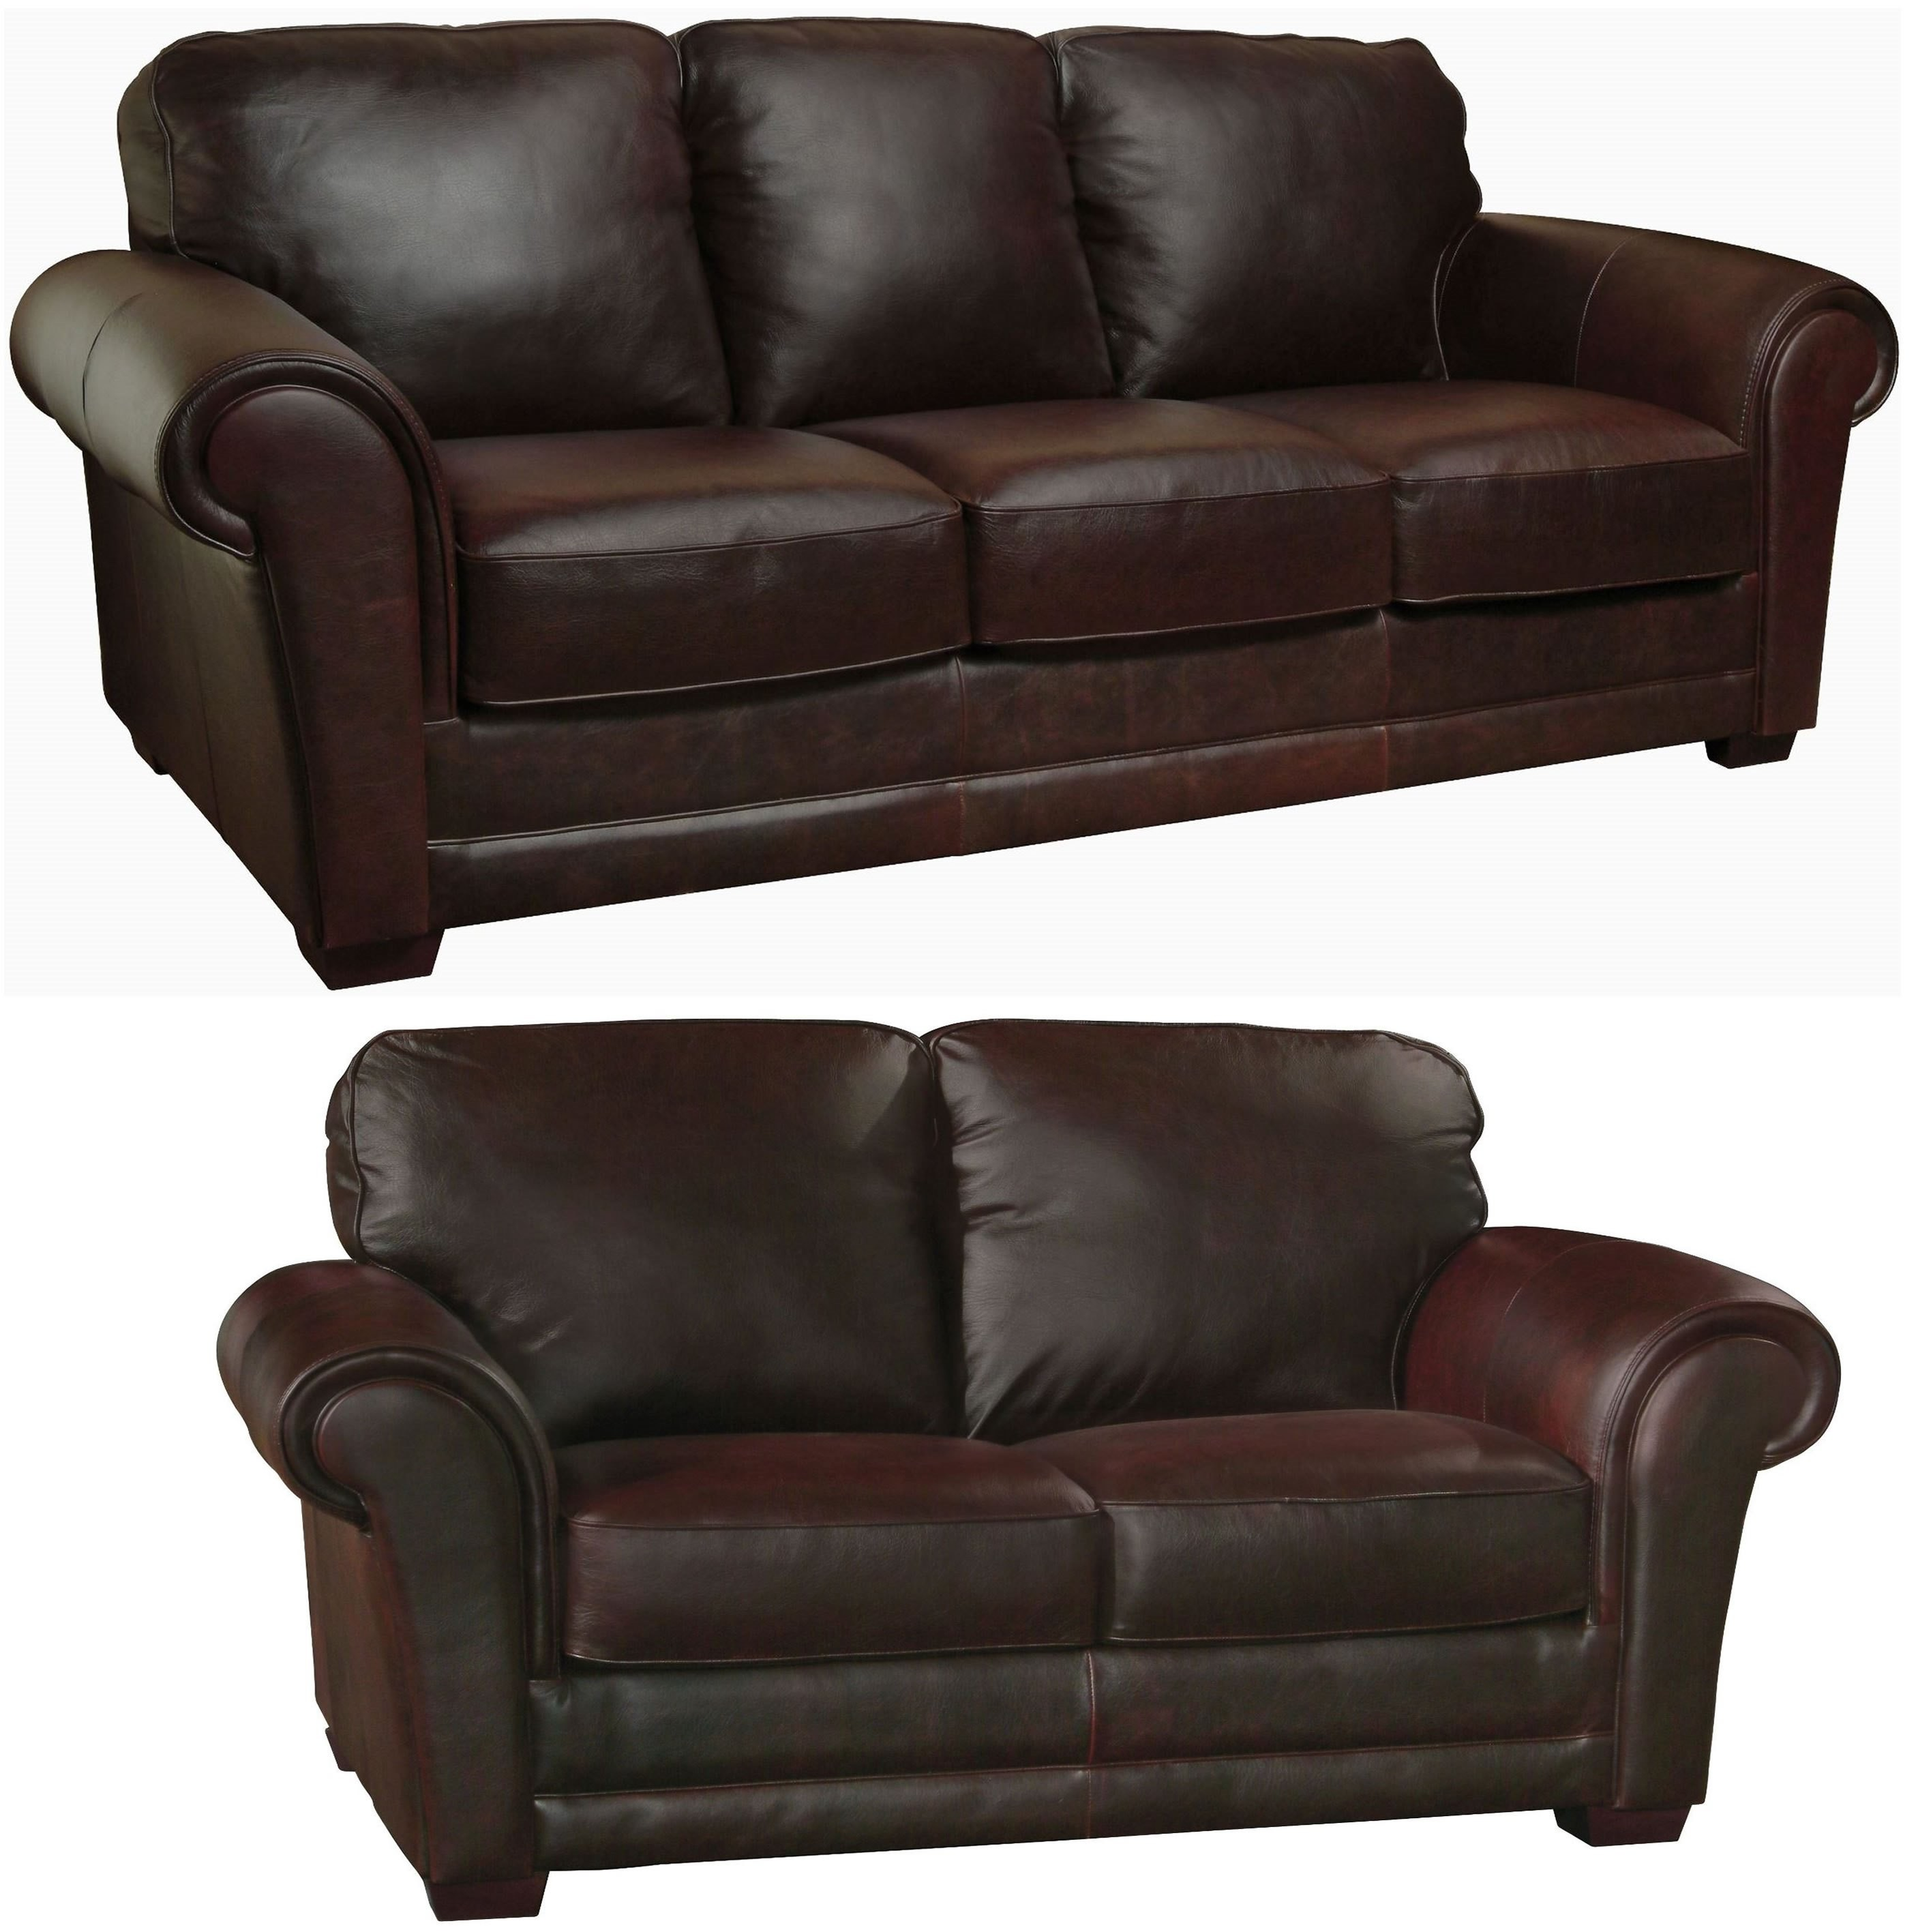 italian leather living room furniture. Mark Italian Leather Living Room Collectoin From Luke  834764 Set from Coleman